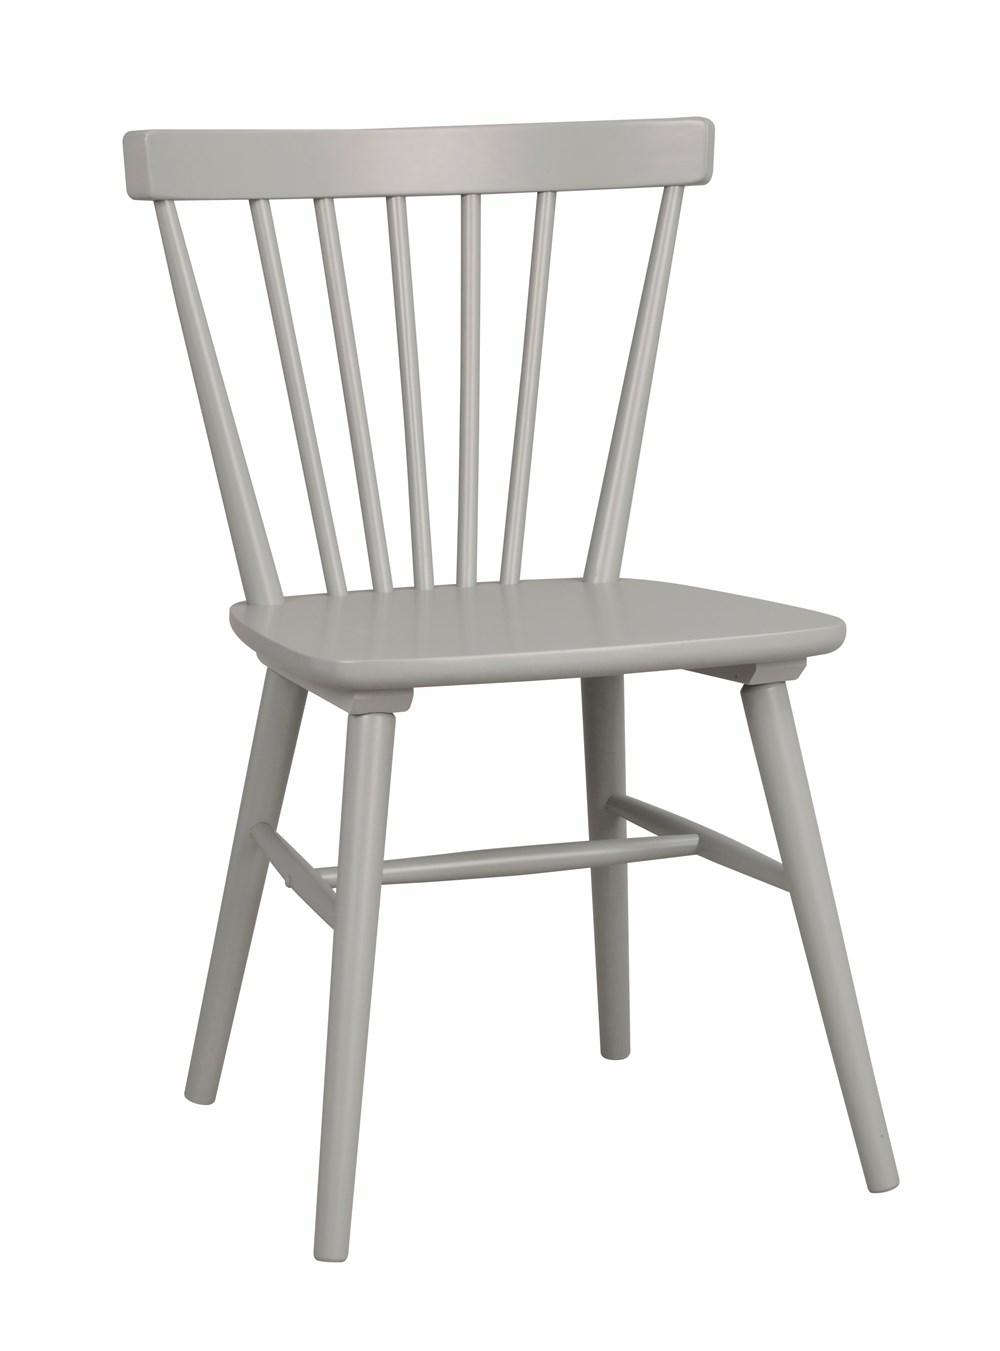 AKITA CHAIR Light Grey Rubberwood Chair